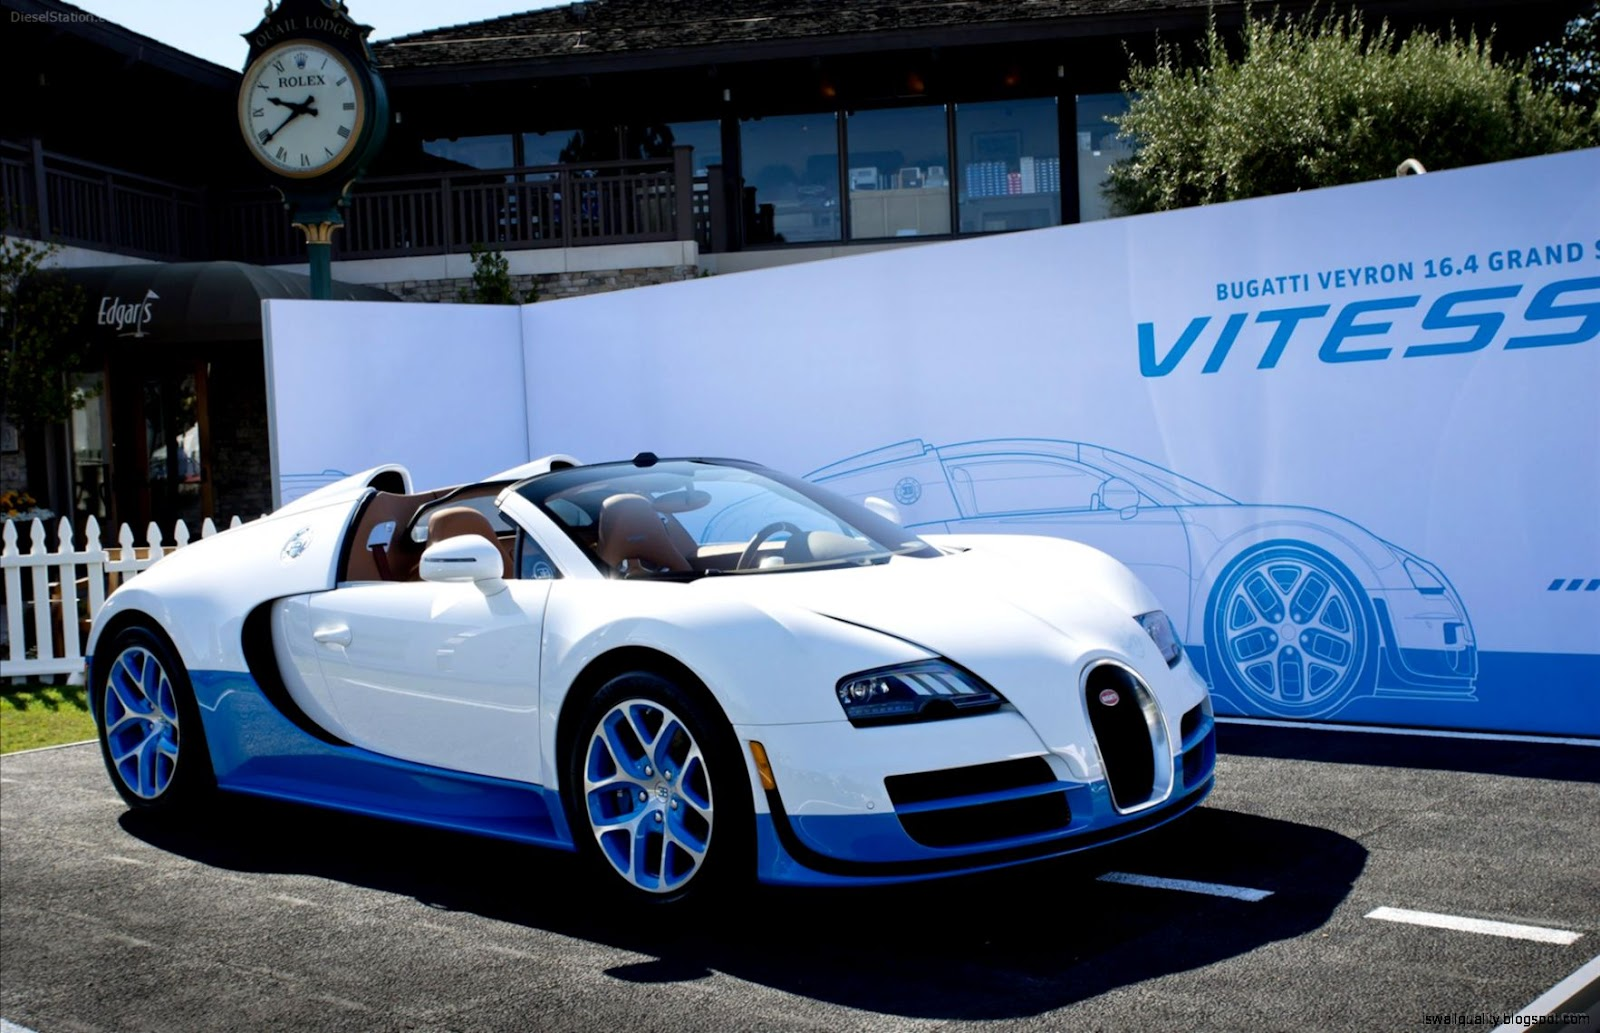 Bugatti Veyron Super Sport Gold Wallpaper Free Wallpapers Quality